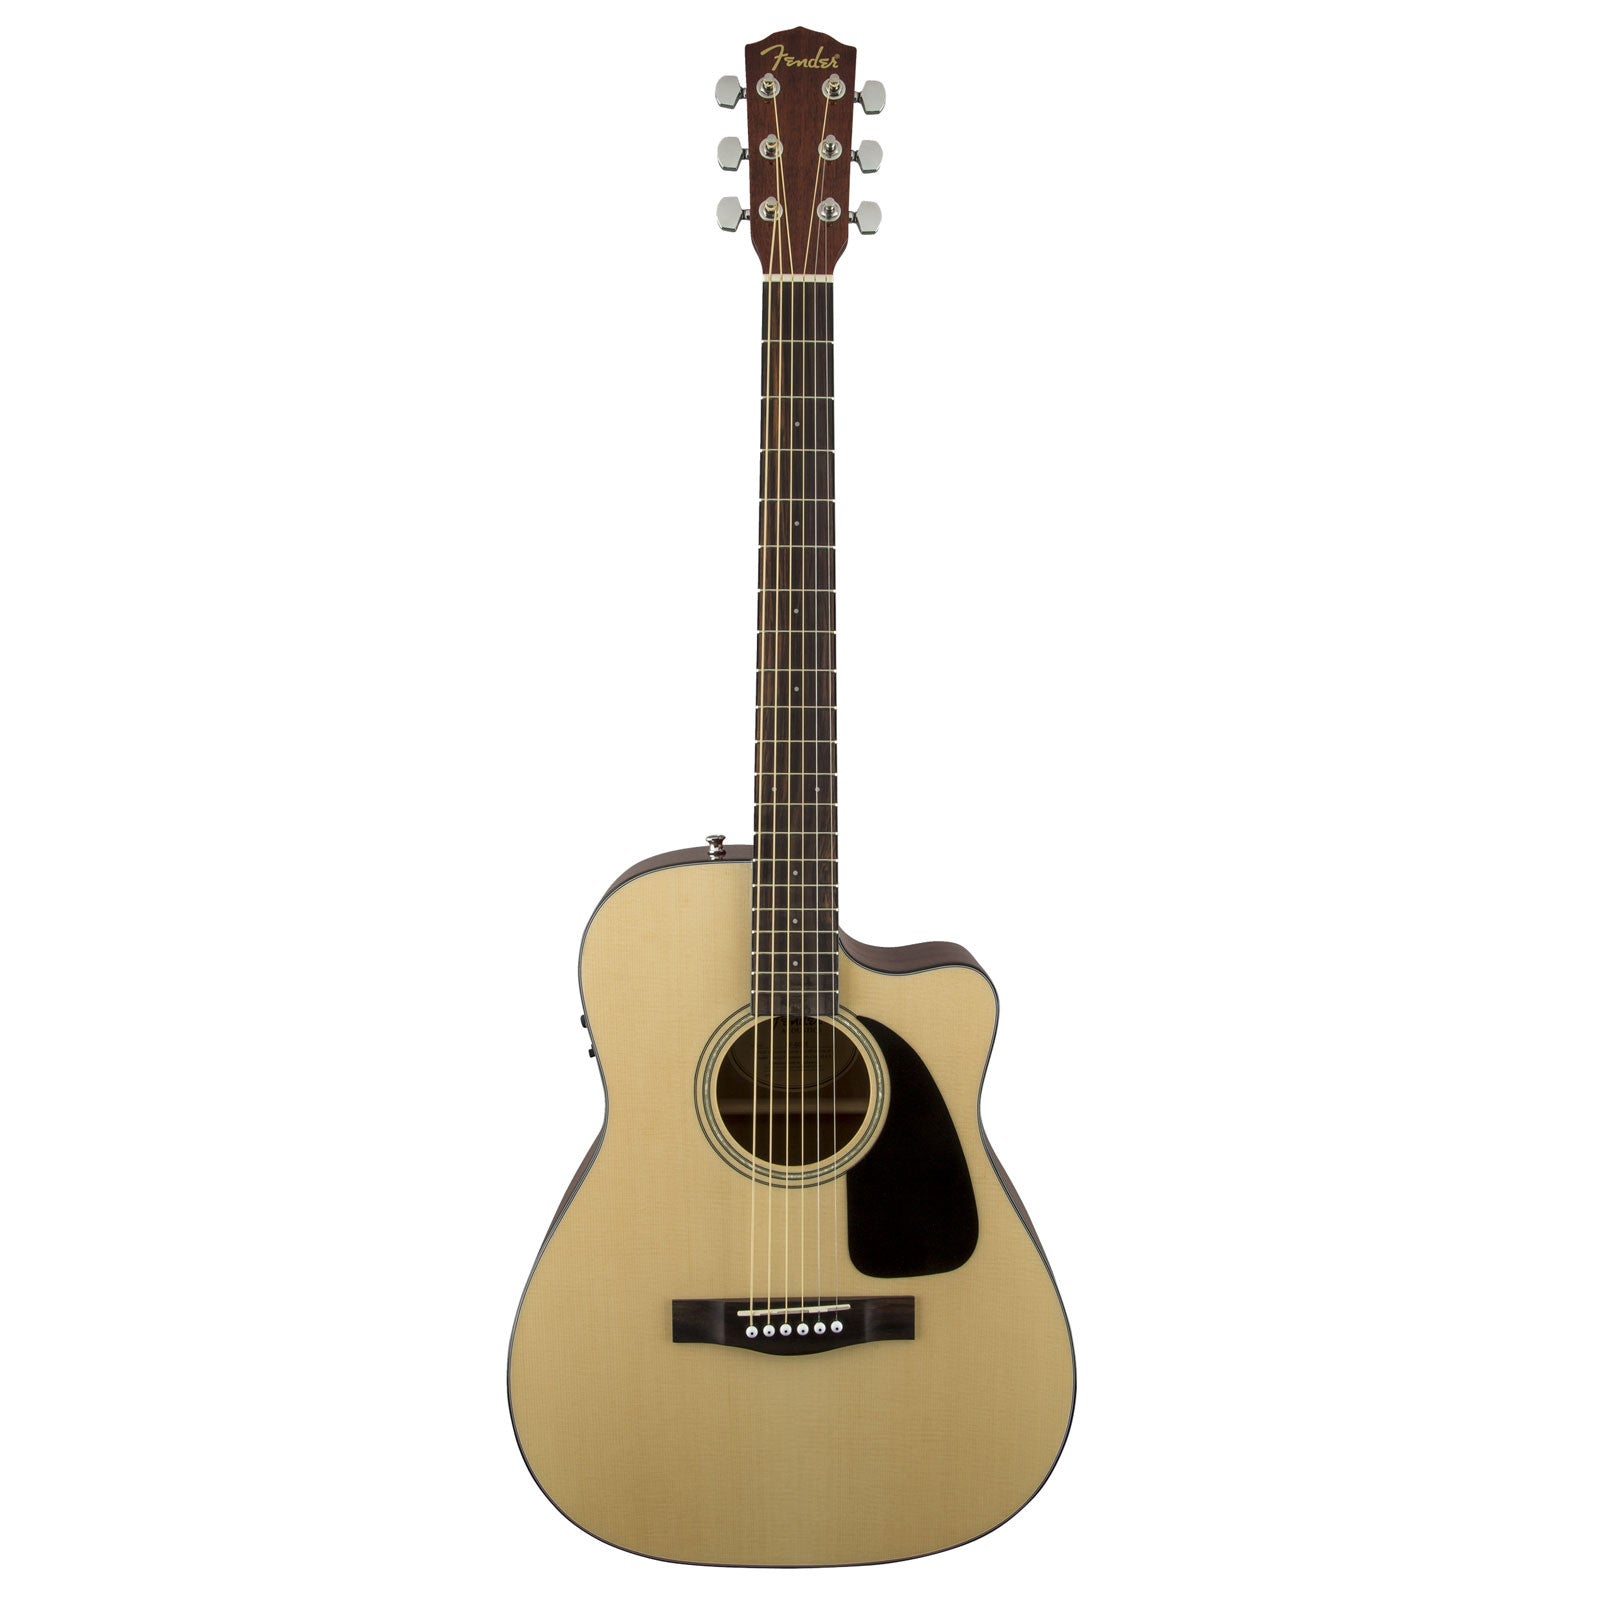 85d1cf5026e Fender - CF-60CE Acoustic Guitar with hardshell case | Mass Street ...